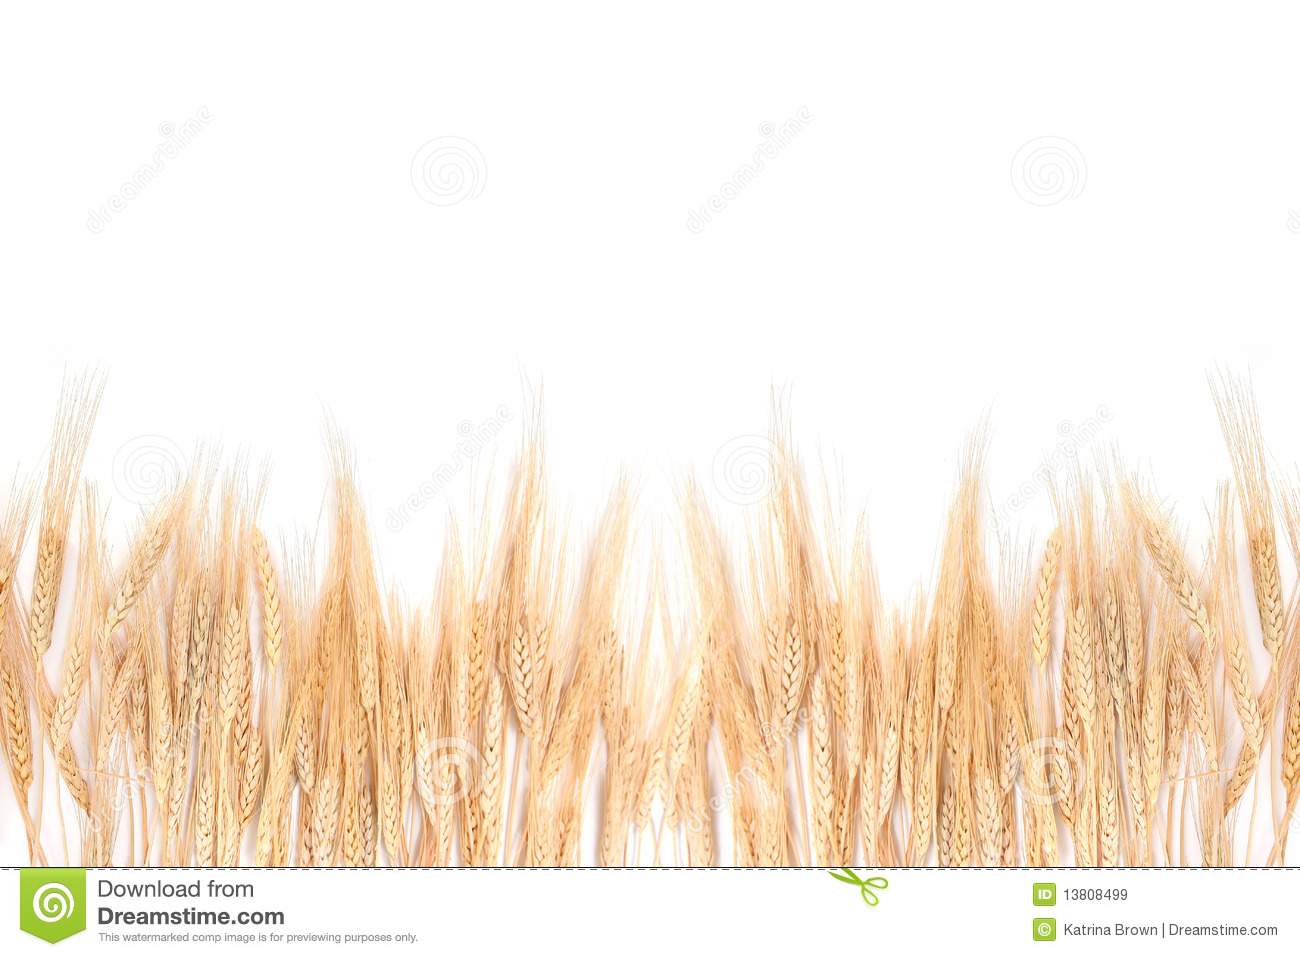 Fall Harvest Wallpaper Images Wheat Grass Bordering On A White Background Stock Image